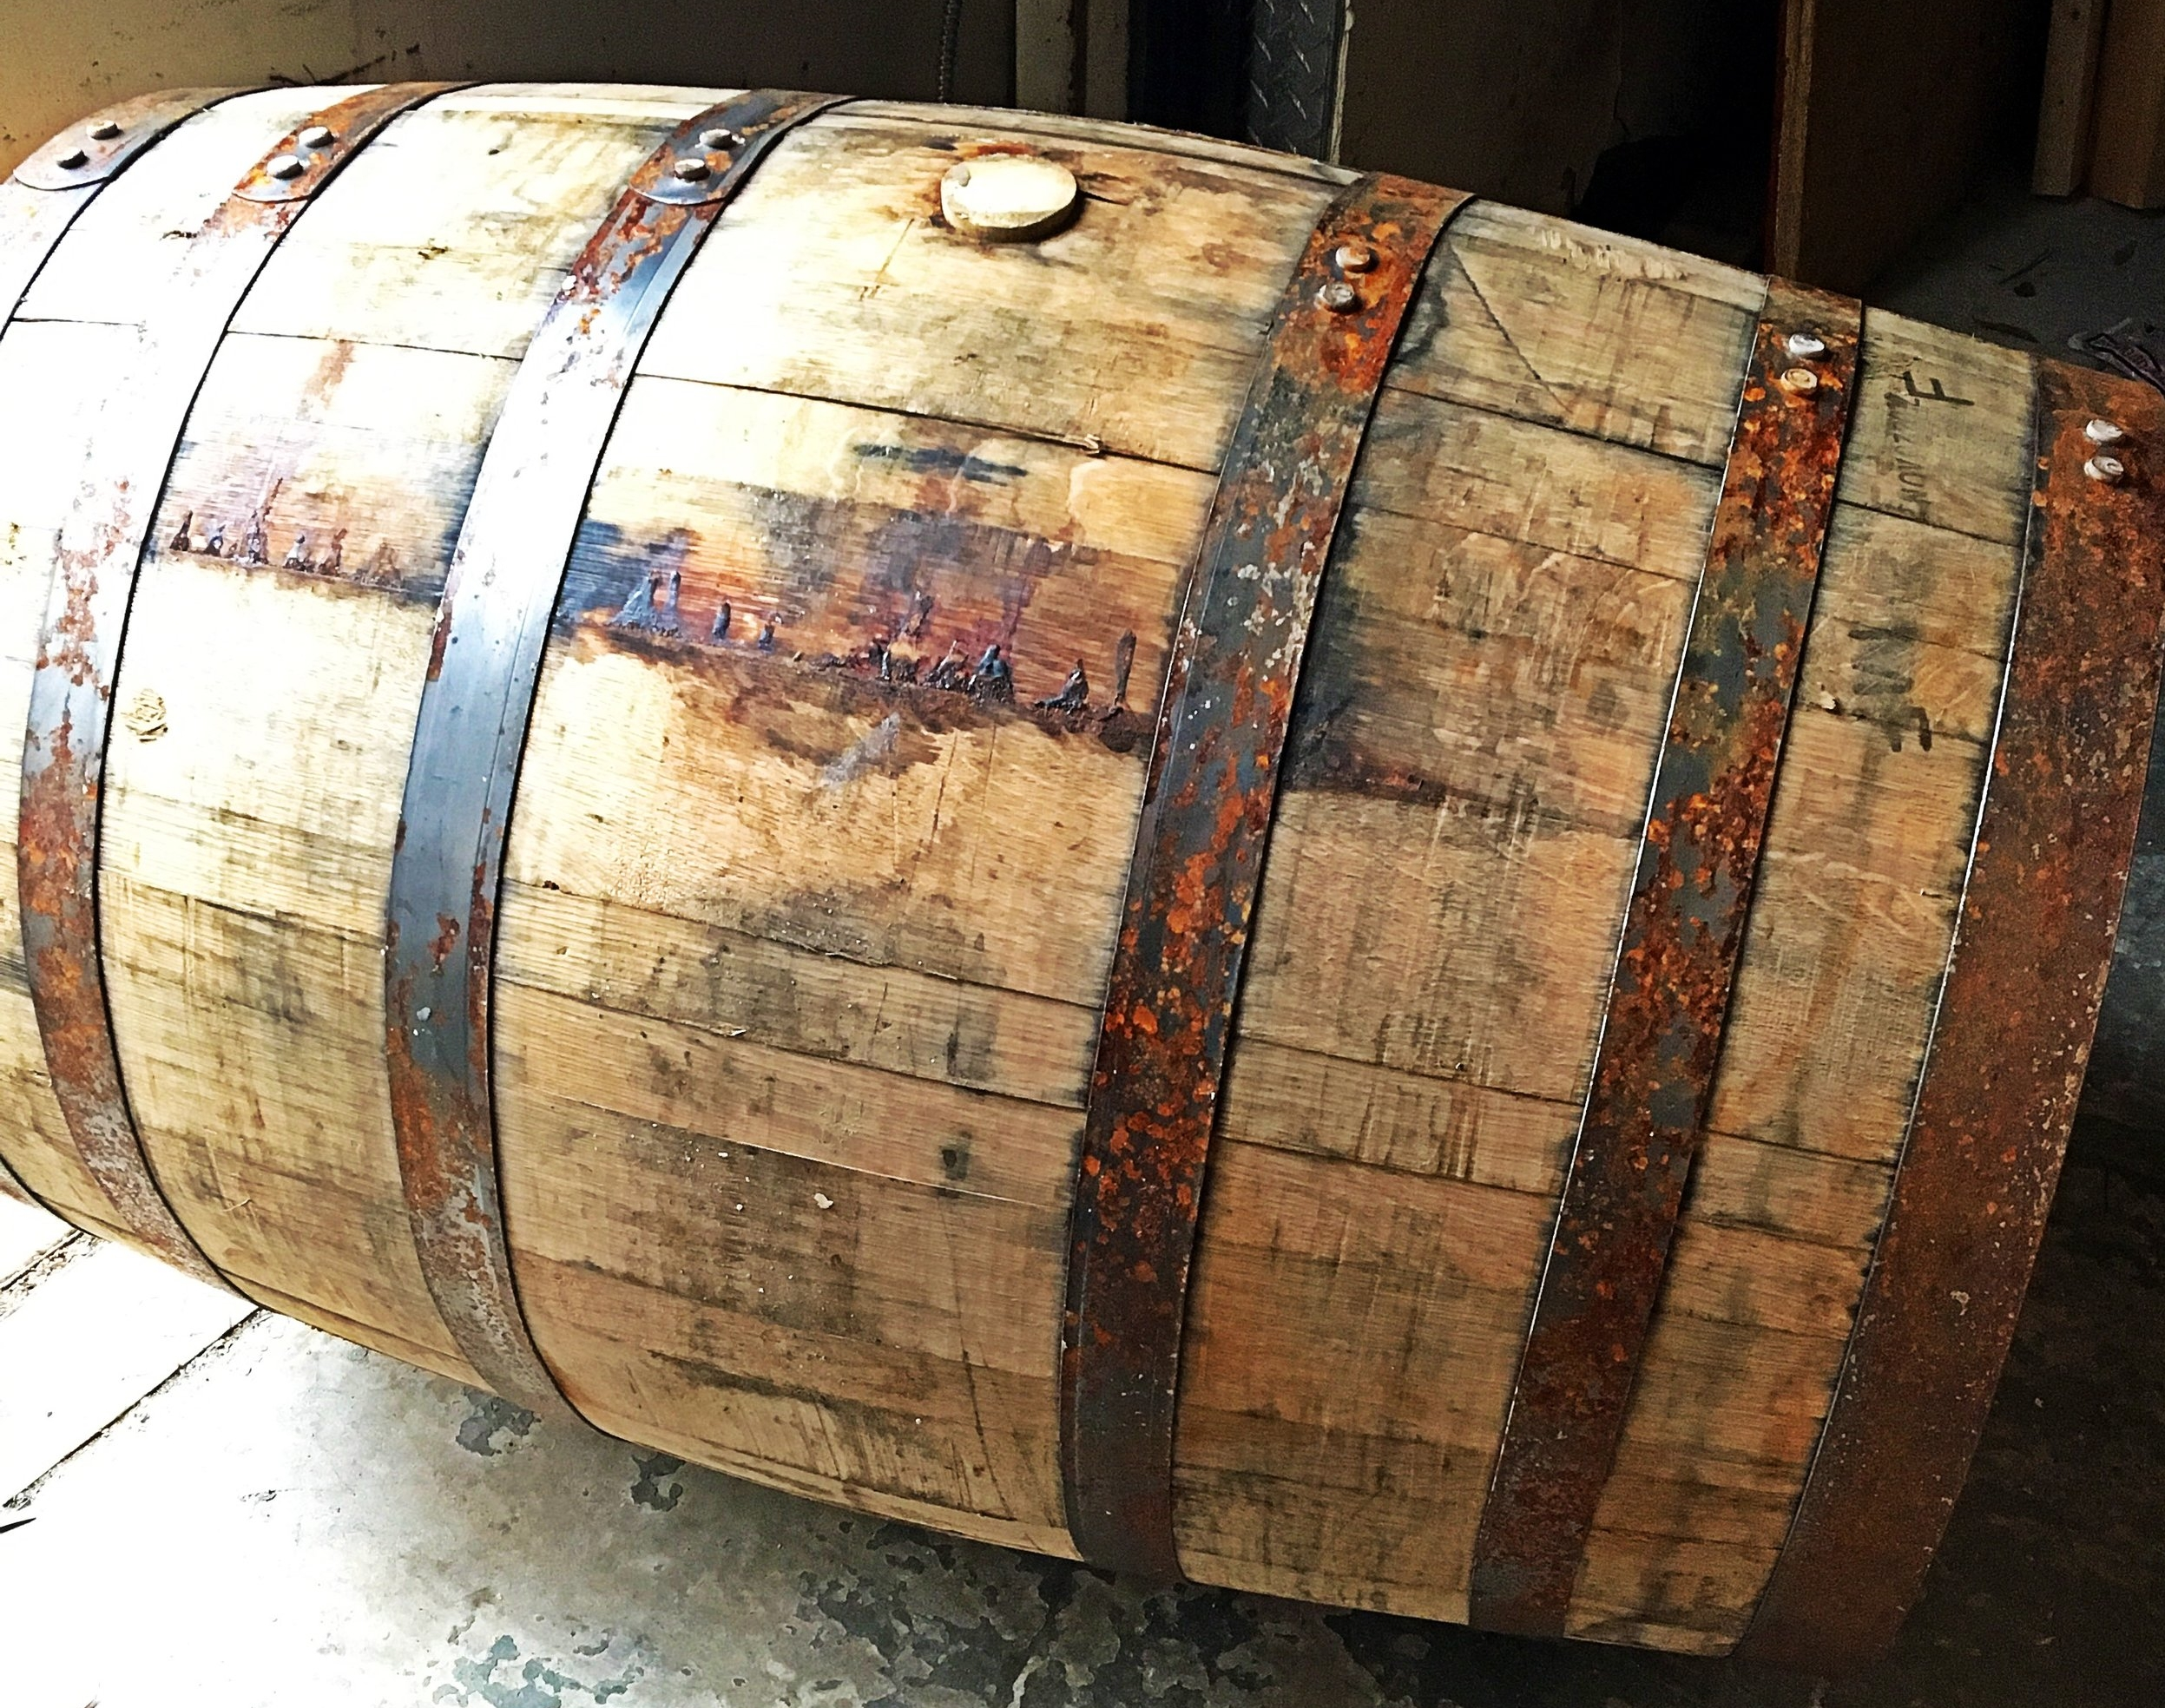 The barrels are already begging me to fill them with imperial stout